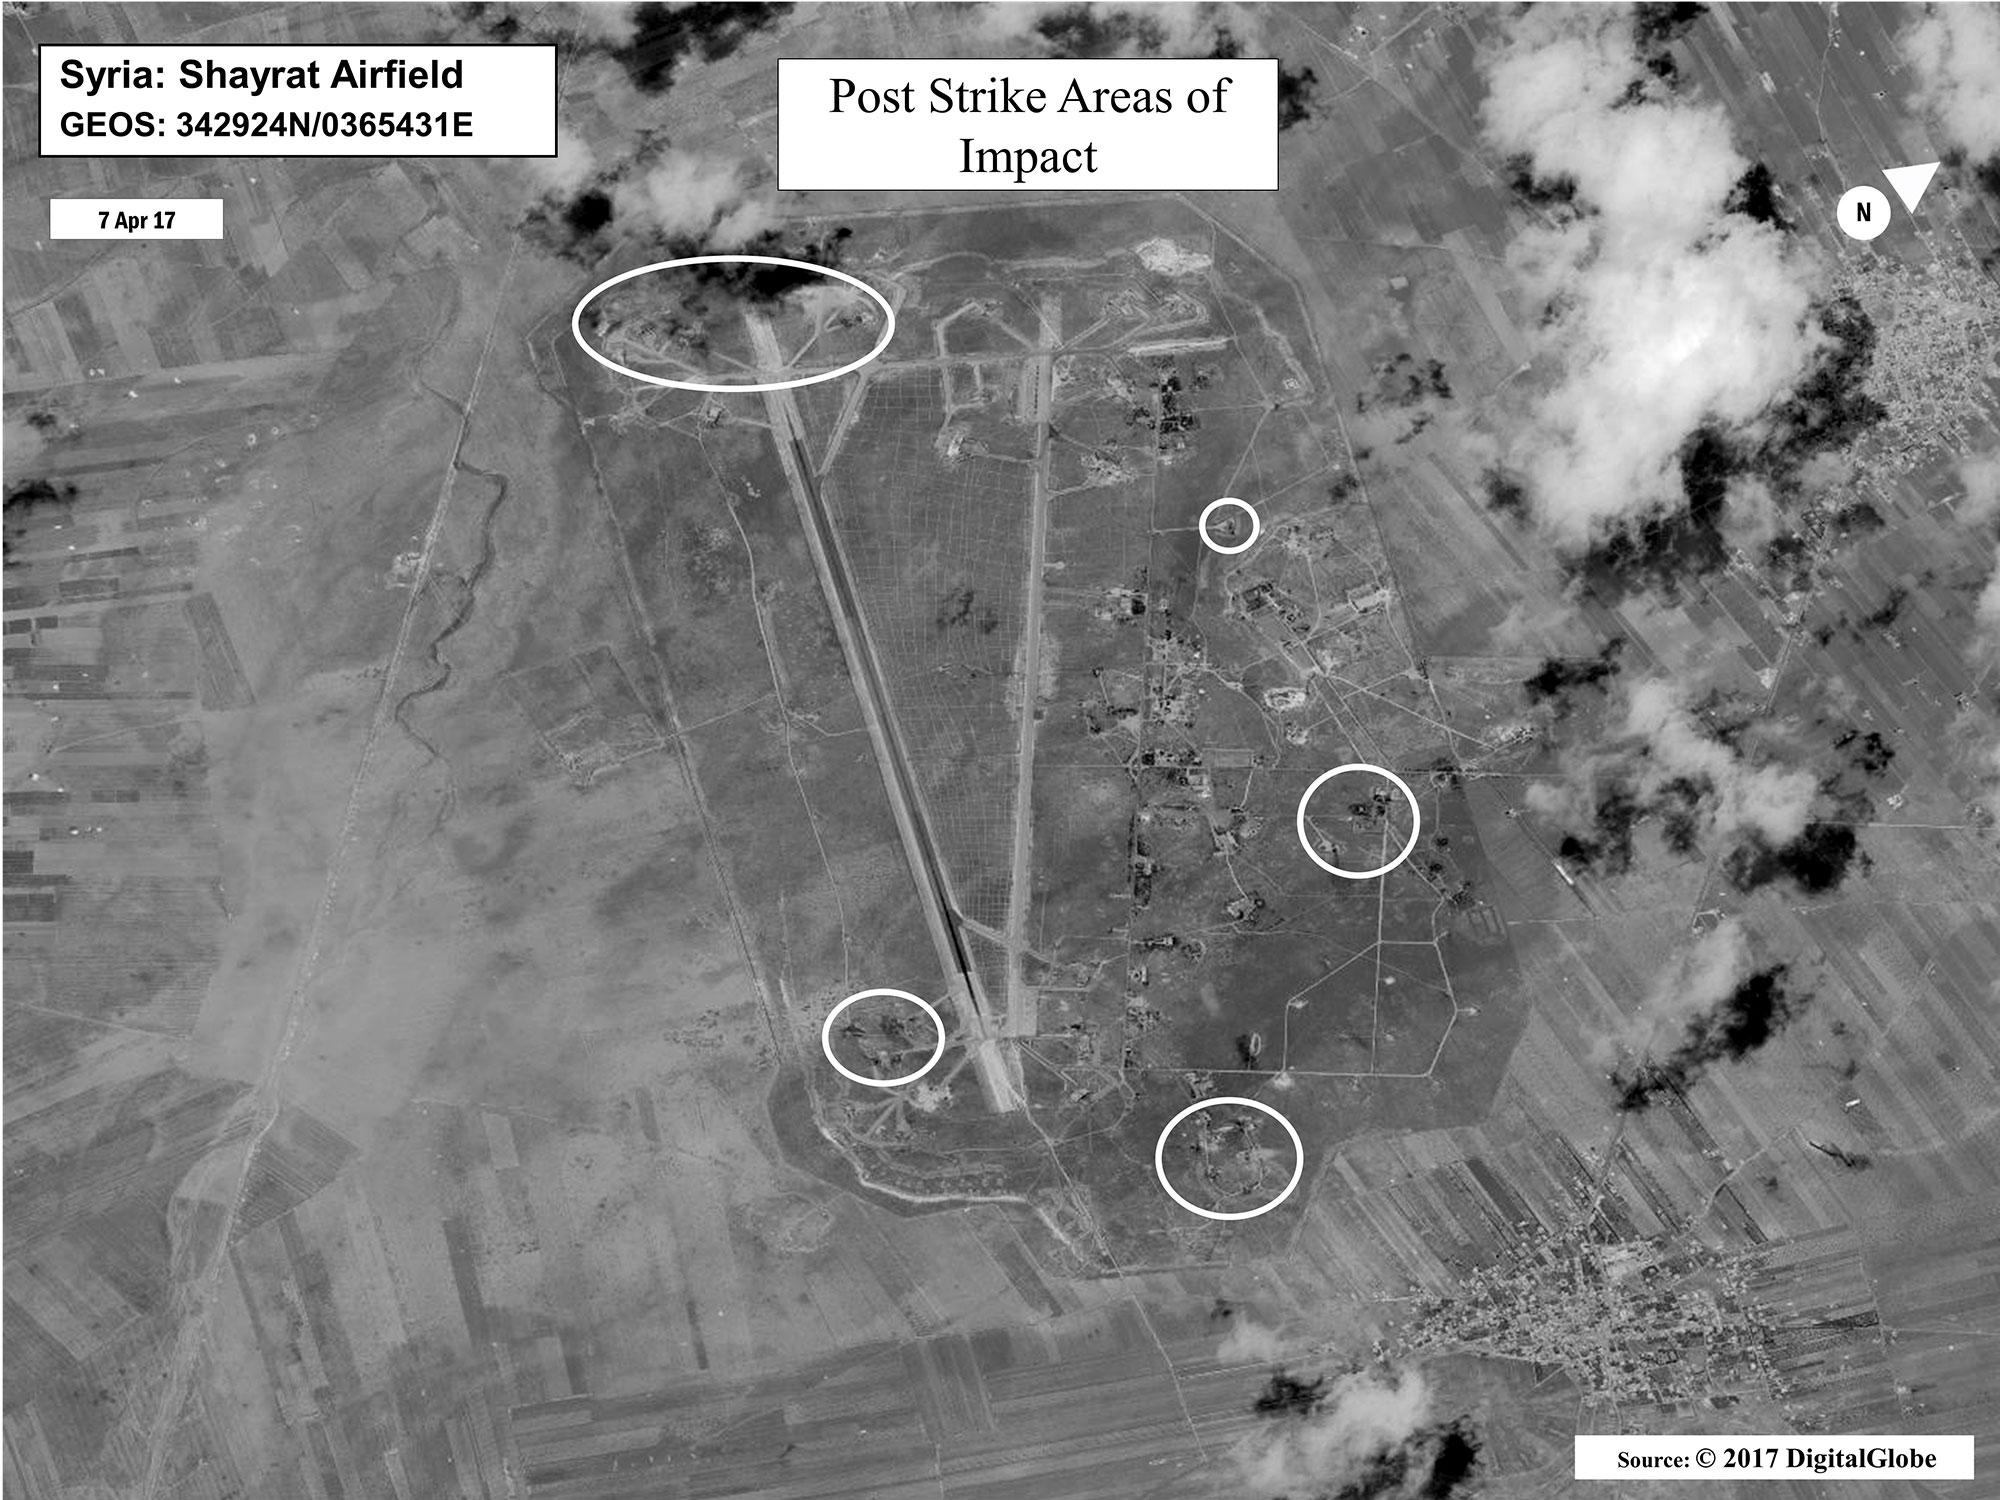 <p>A Defense Department damage assessment image of Shayrat Air Base in Syria. The United States blasted the air base with a barrage of cruise missiles on Friday, April 7, 2017, in fiery retaliation for this week's gruesome chemical weapons attack against civilians. (DigitalGlobe/U.S. Department of Defense via AP) </p>